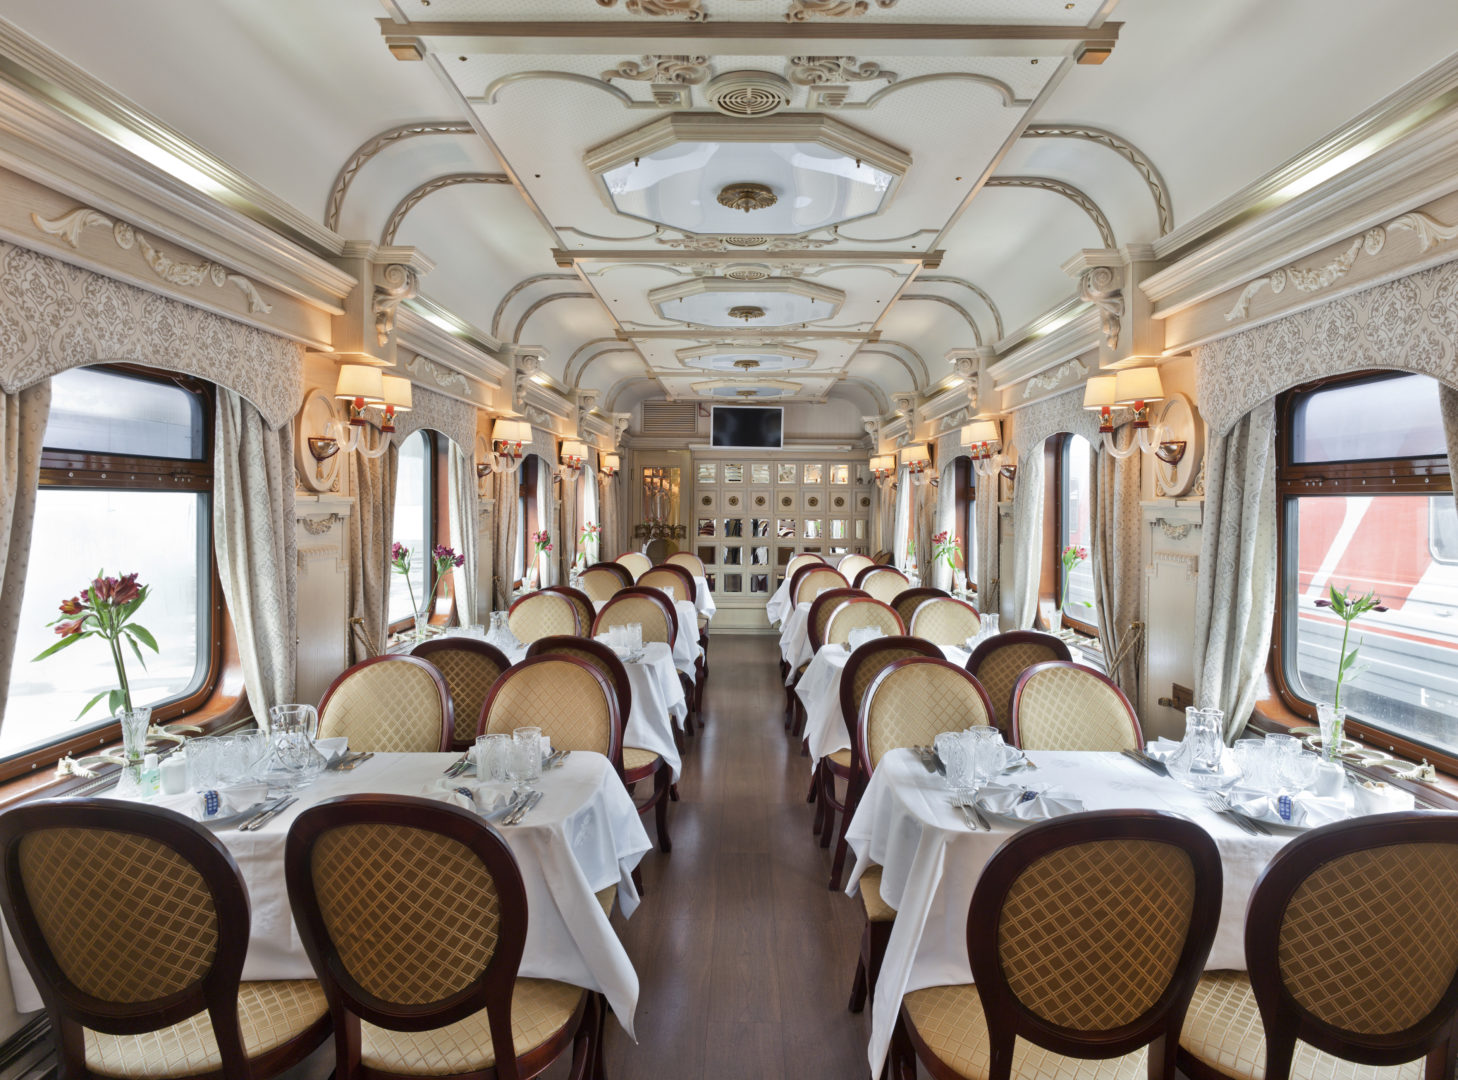 Golden Eagle Restaurant Car – 5 Most Luxurious Trains: Kingdom on Wheels